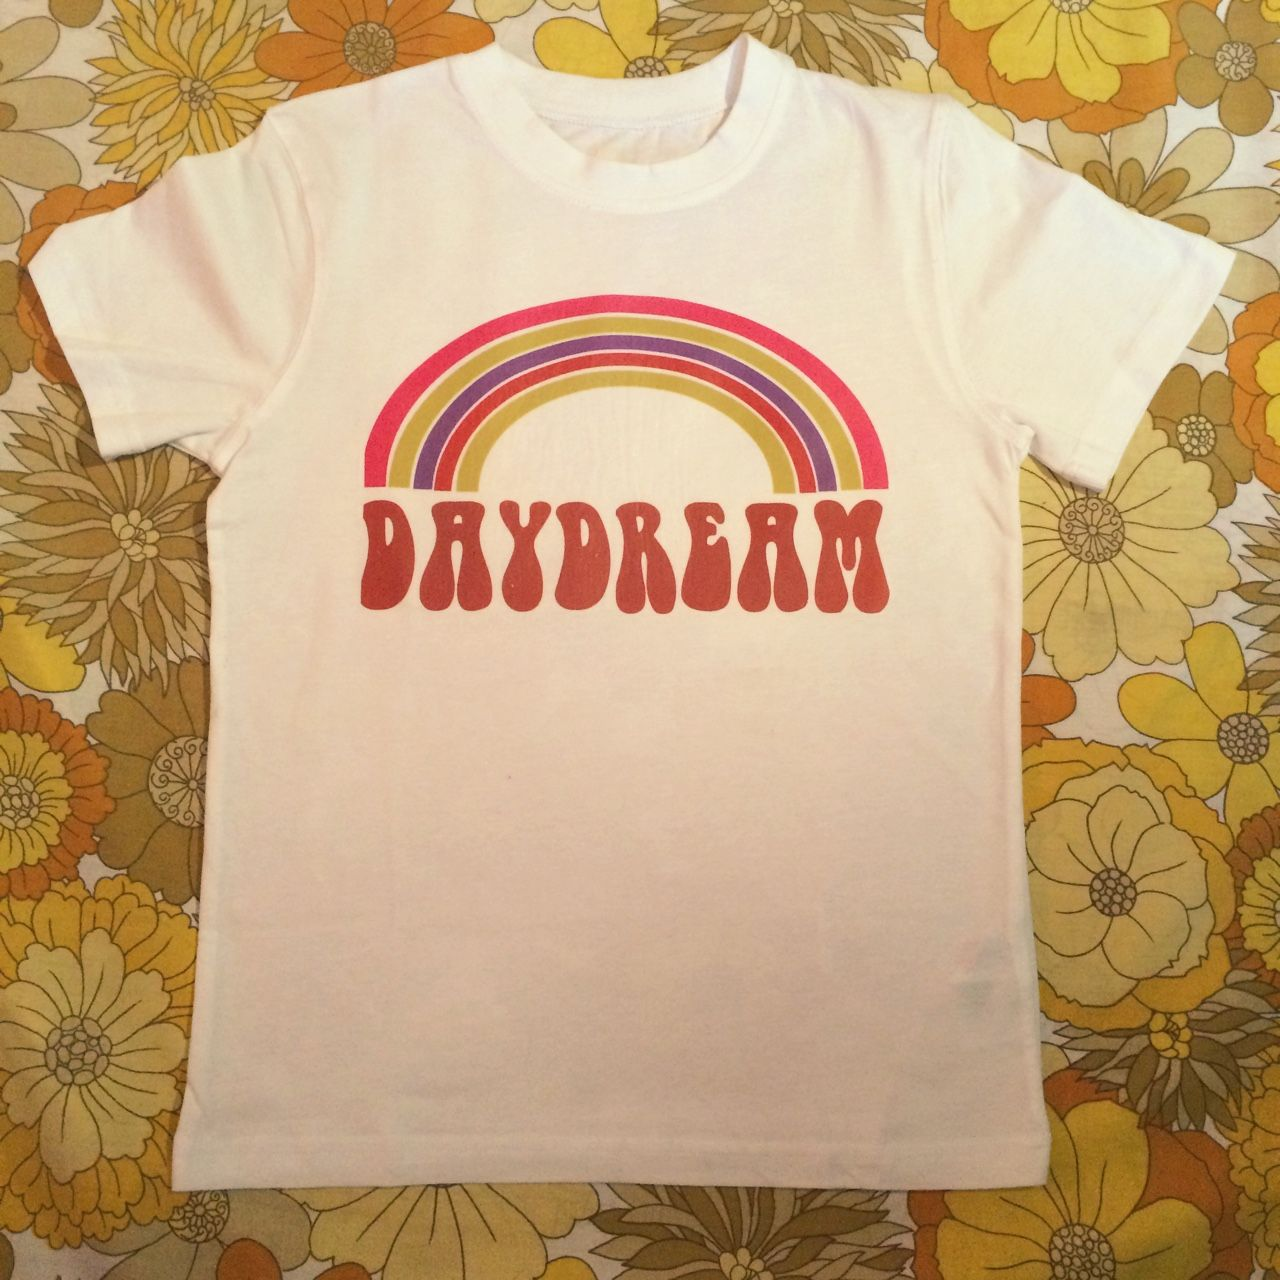 fb44d973 Hippie boho vintage retro 60s 70s: white rainbow daydream tshirt It is  printed onto a quality thick neckline t-shirt. It is also unisex PM ME TO  BUY.